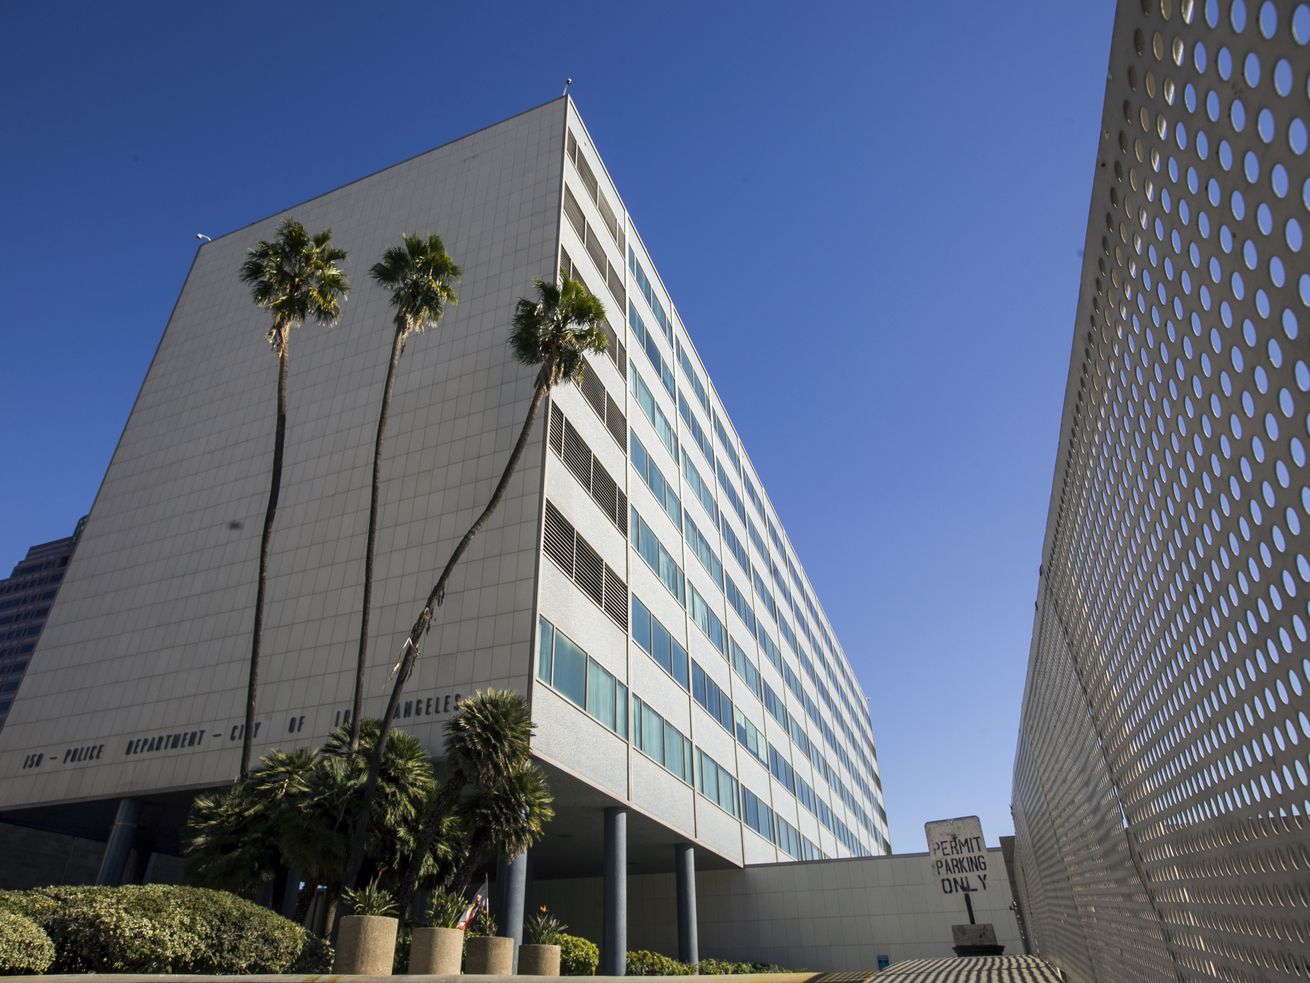 Parker Center was built in 1955 and served as LA's longtime police headquarters.